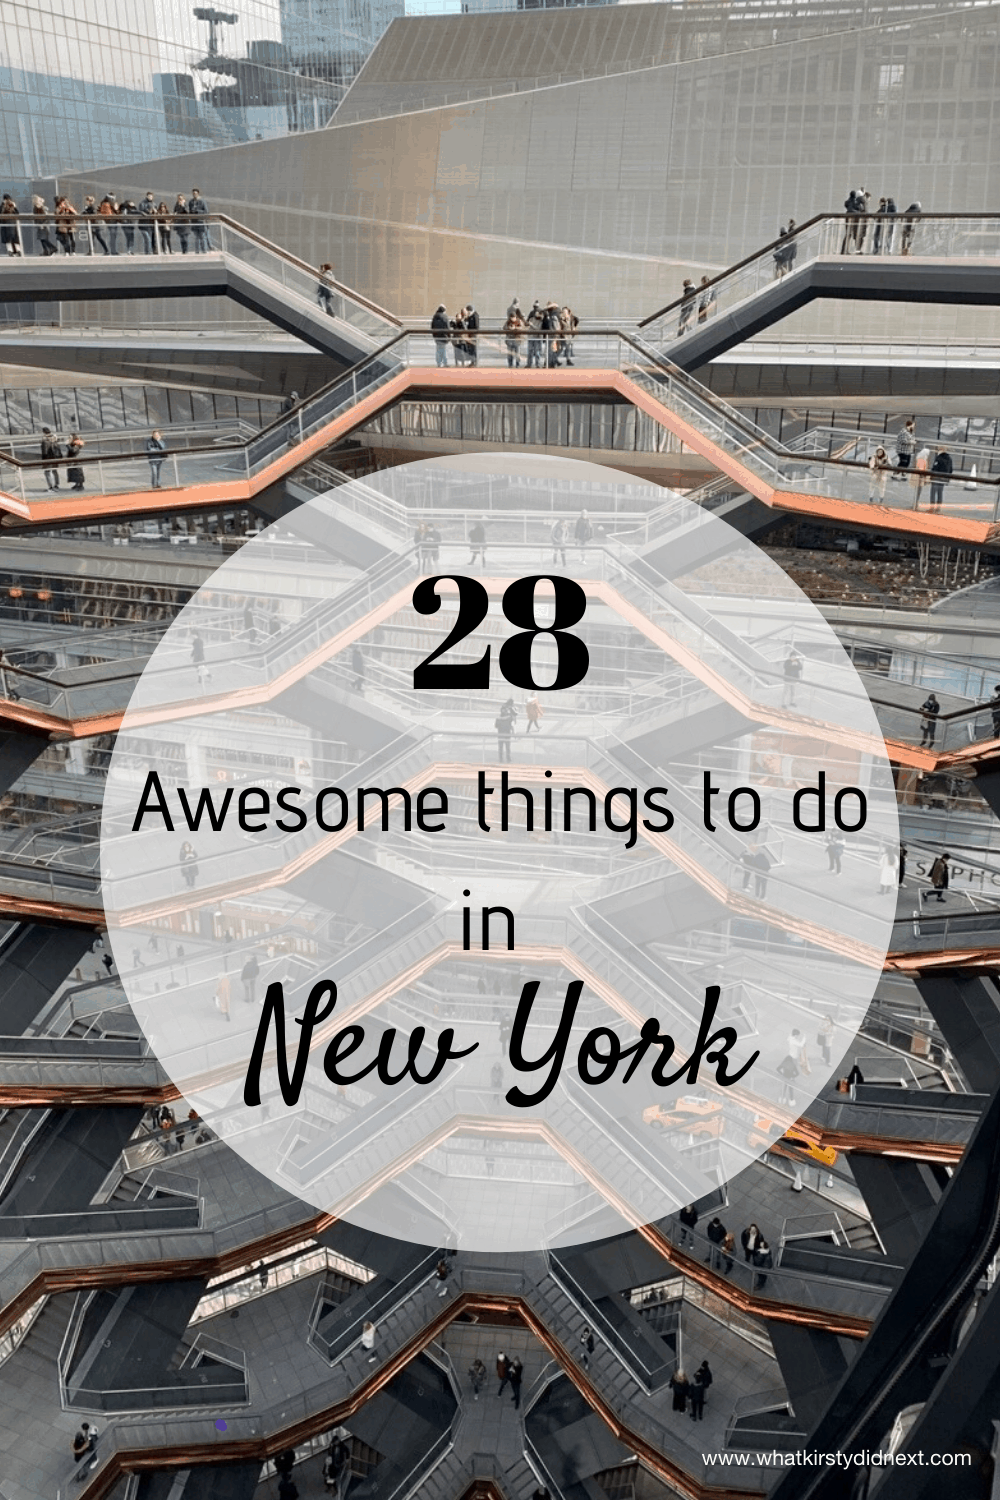 28 awesome things to do in New York